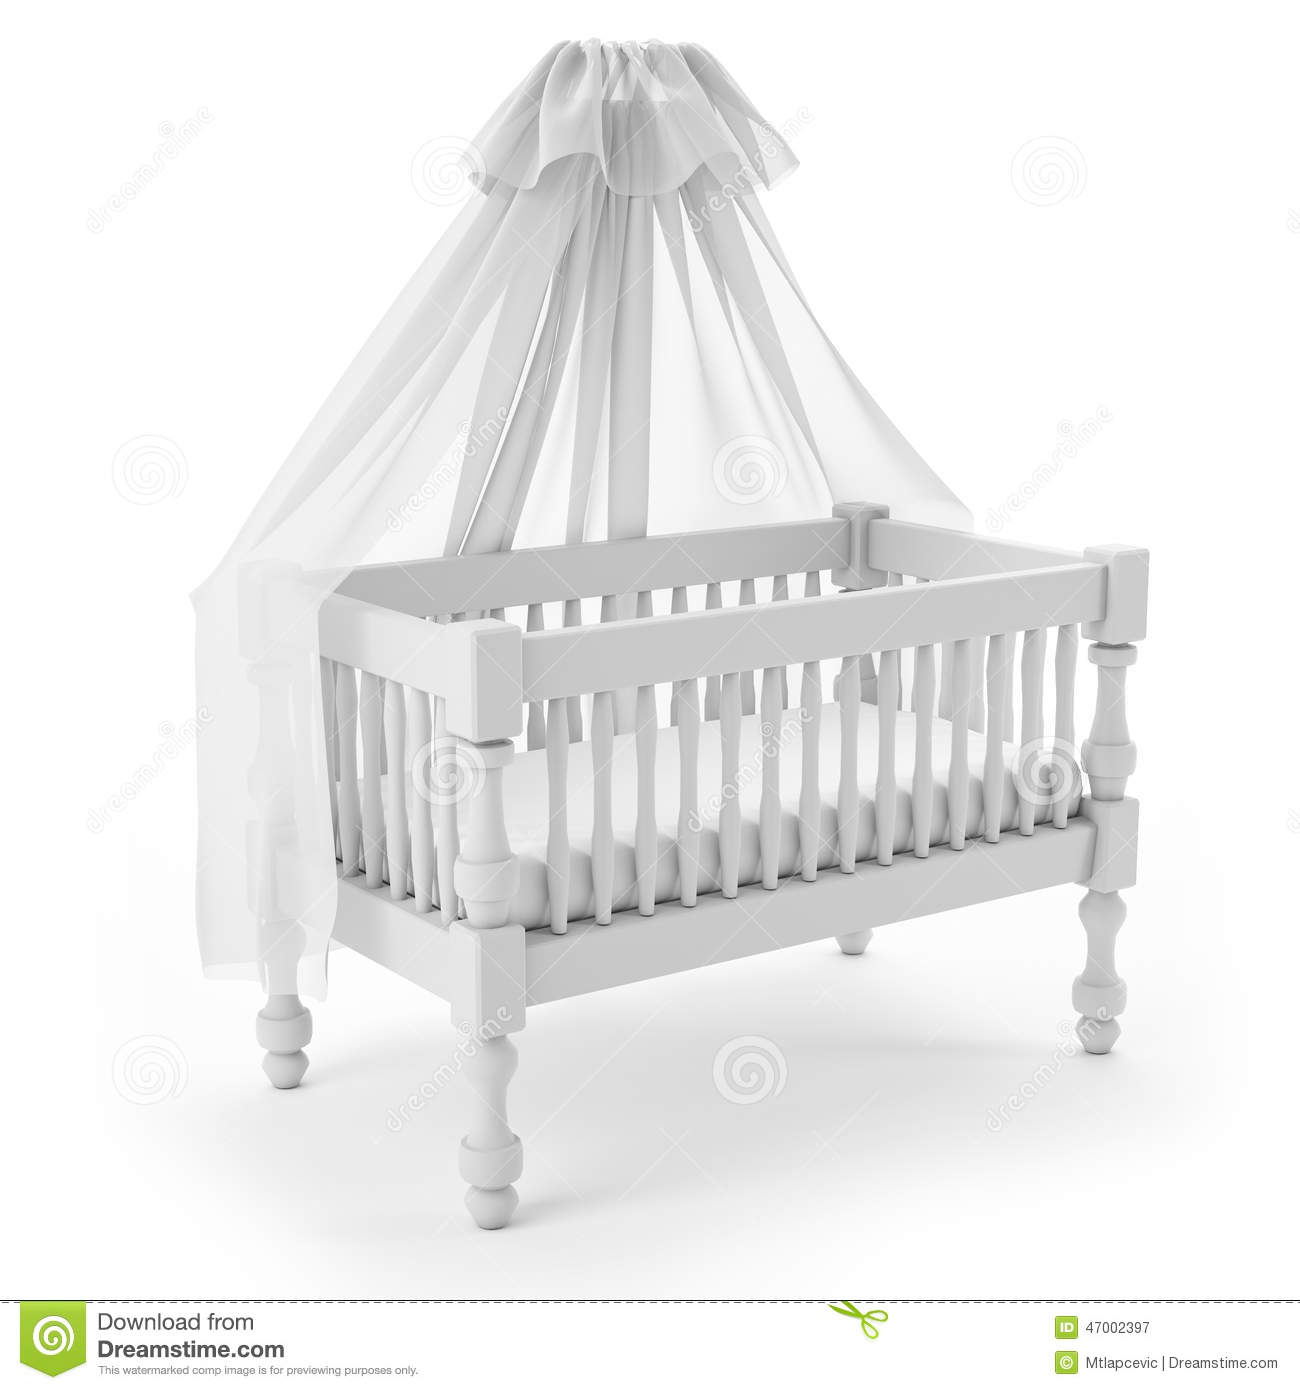 White baby crib with canopy isolated on white background for White canopy crib